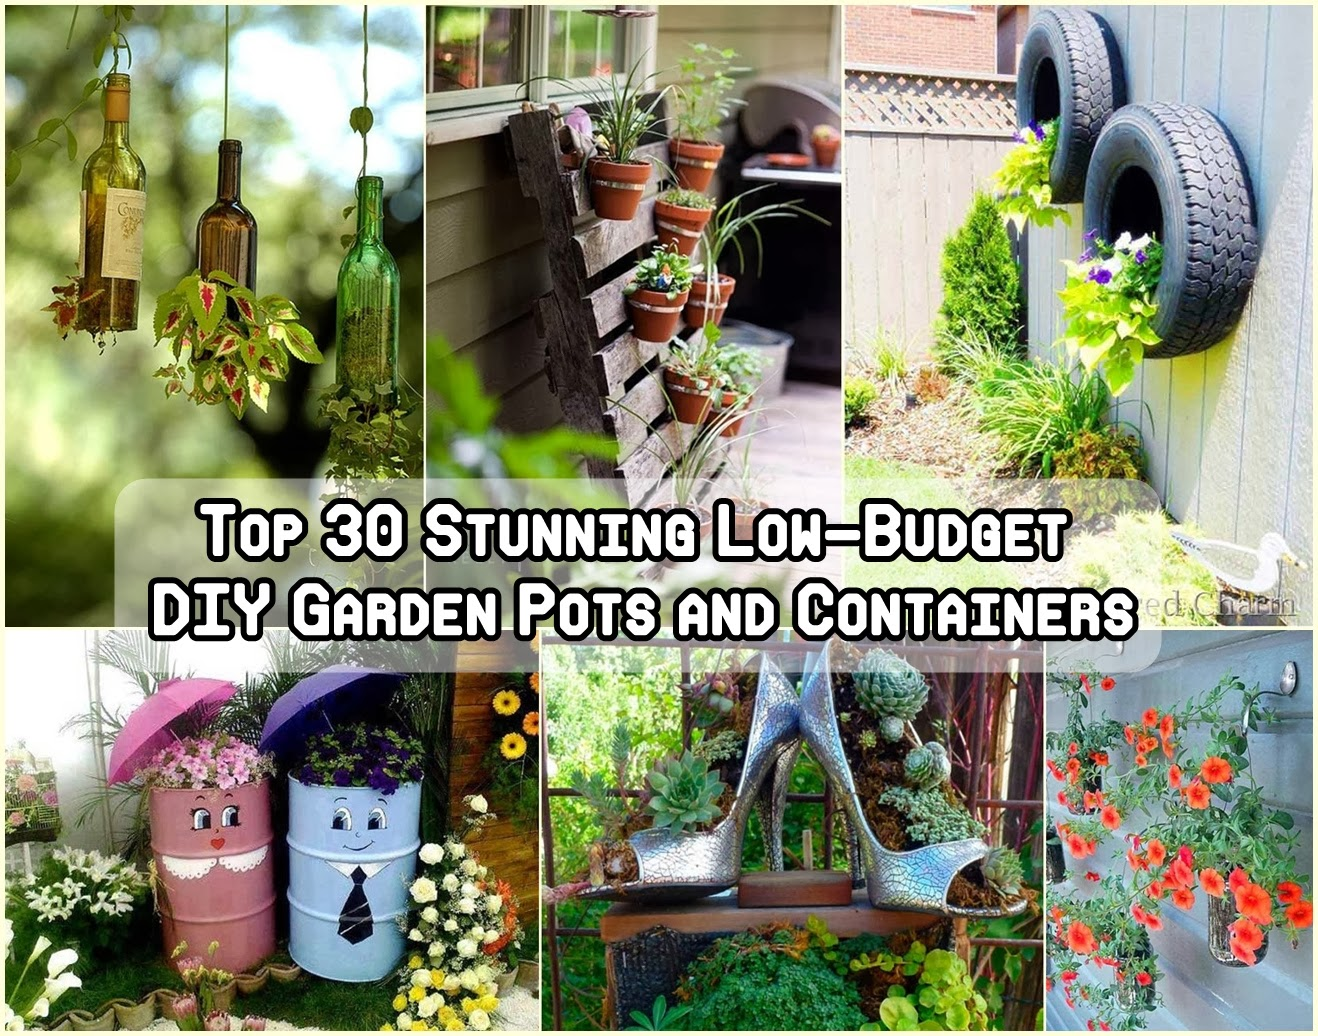 Top 30 Amazing Low Budget Diy Garden Pots And Containers